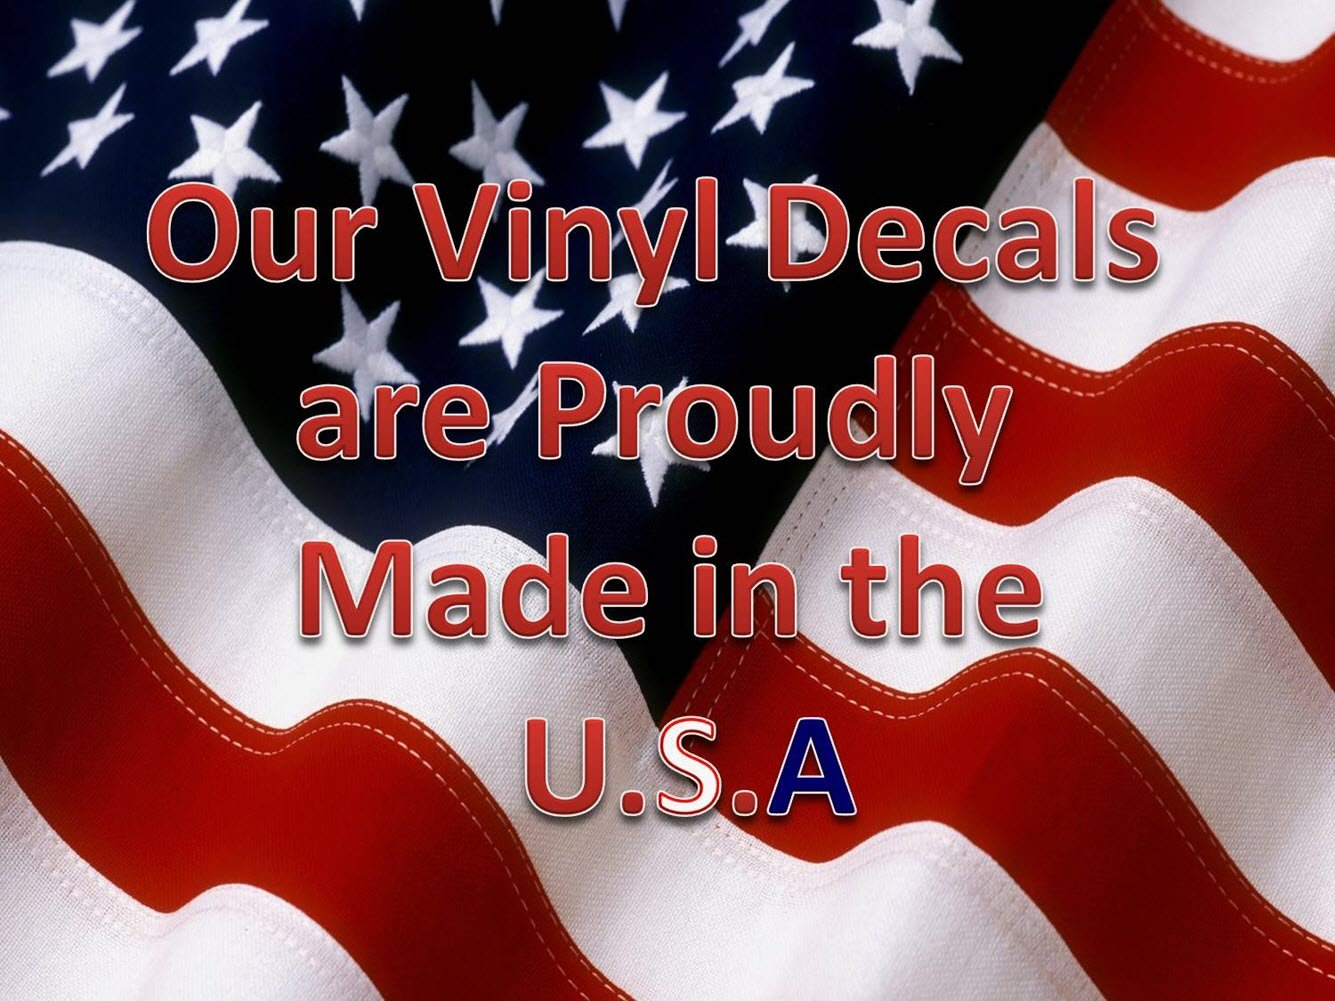 Custom Vinyl Decals - Personalized Decal - CREATE YOUR OWN Removable Personalized INSPIRATIONAL QUOTES Wall Decals - Made from High Quality Vinyl Material - 100% Satisfaction Guaranteed or Money Back! by WallDecalsAndArt (Image #7)